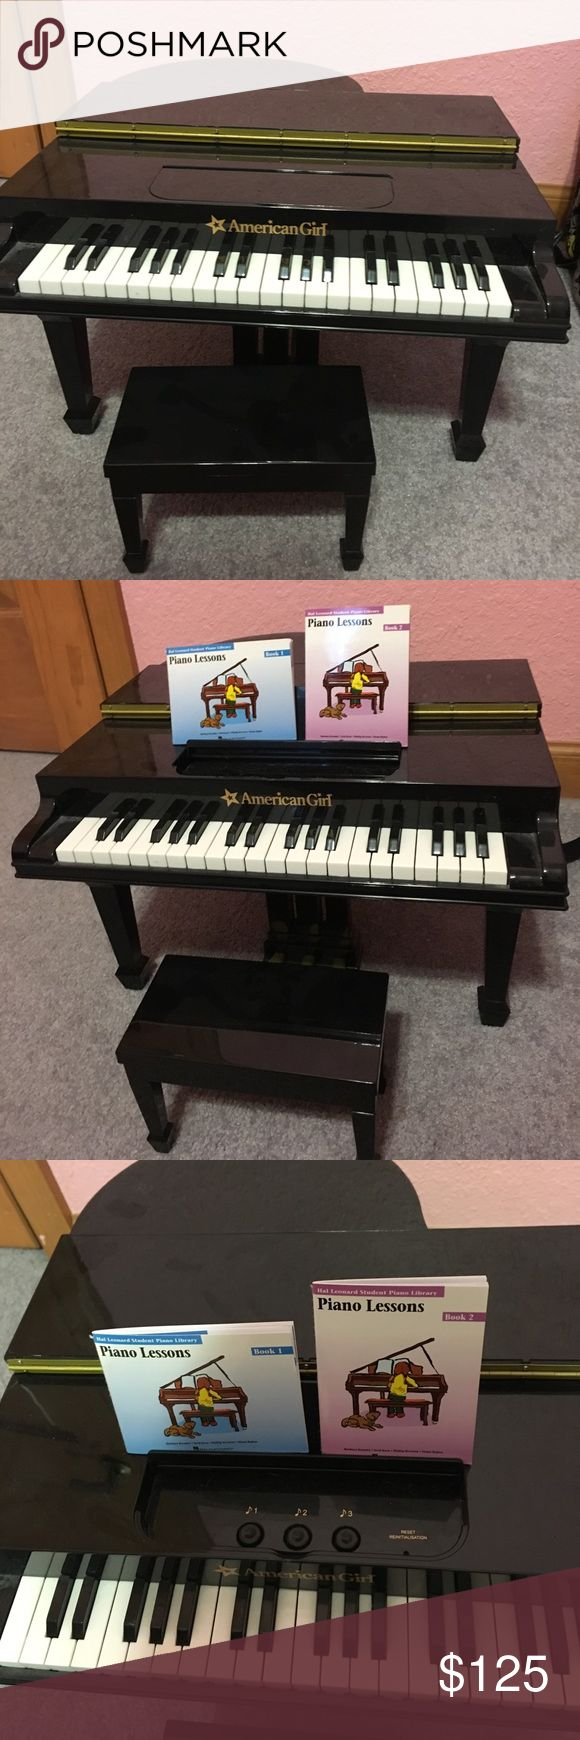 American Girls Doll Baby Grand Piano In excellent condition! Any questions please ask, thx. NO TRADE ❗️❗️❗️❗️price is firm❗️ american girls doll Accessories